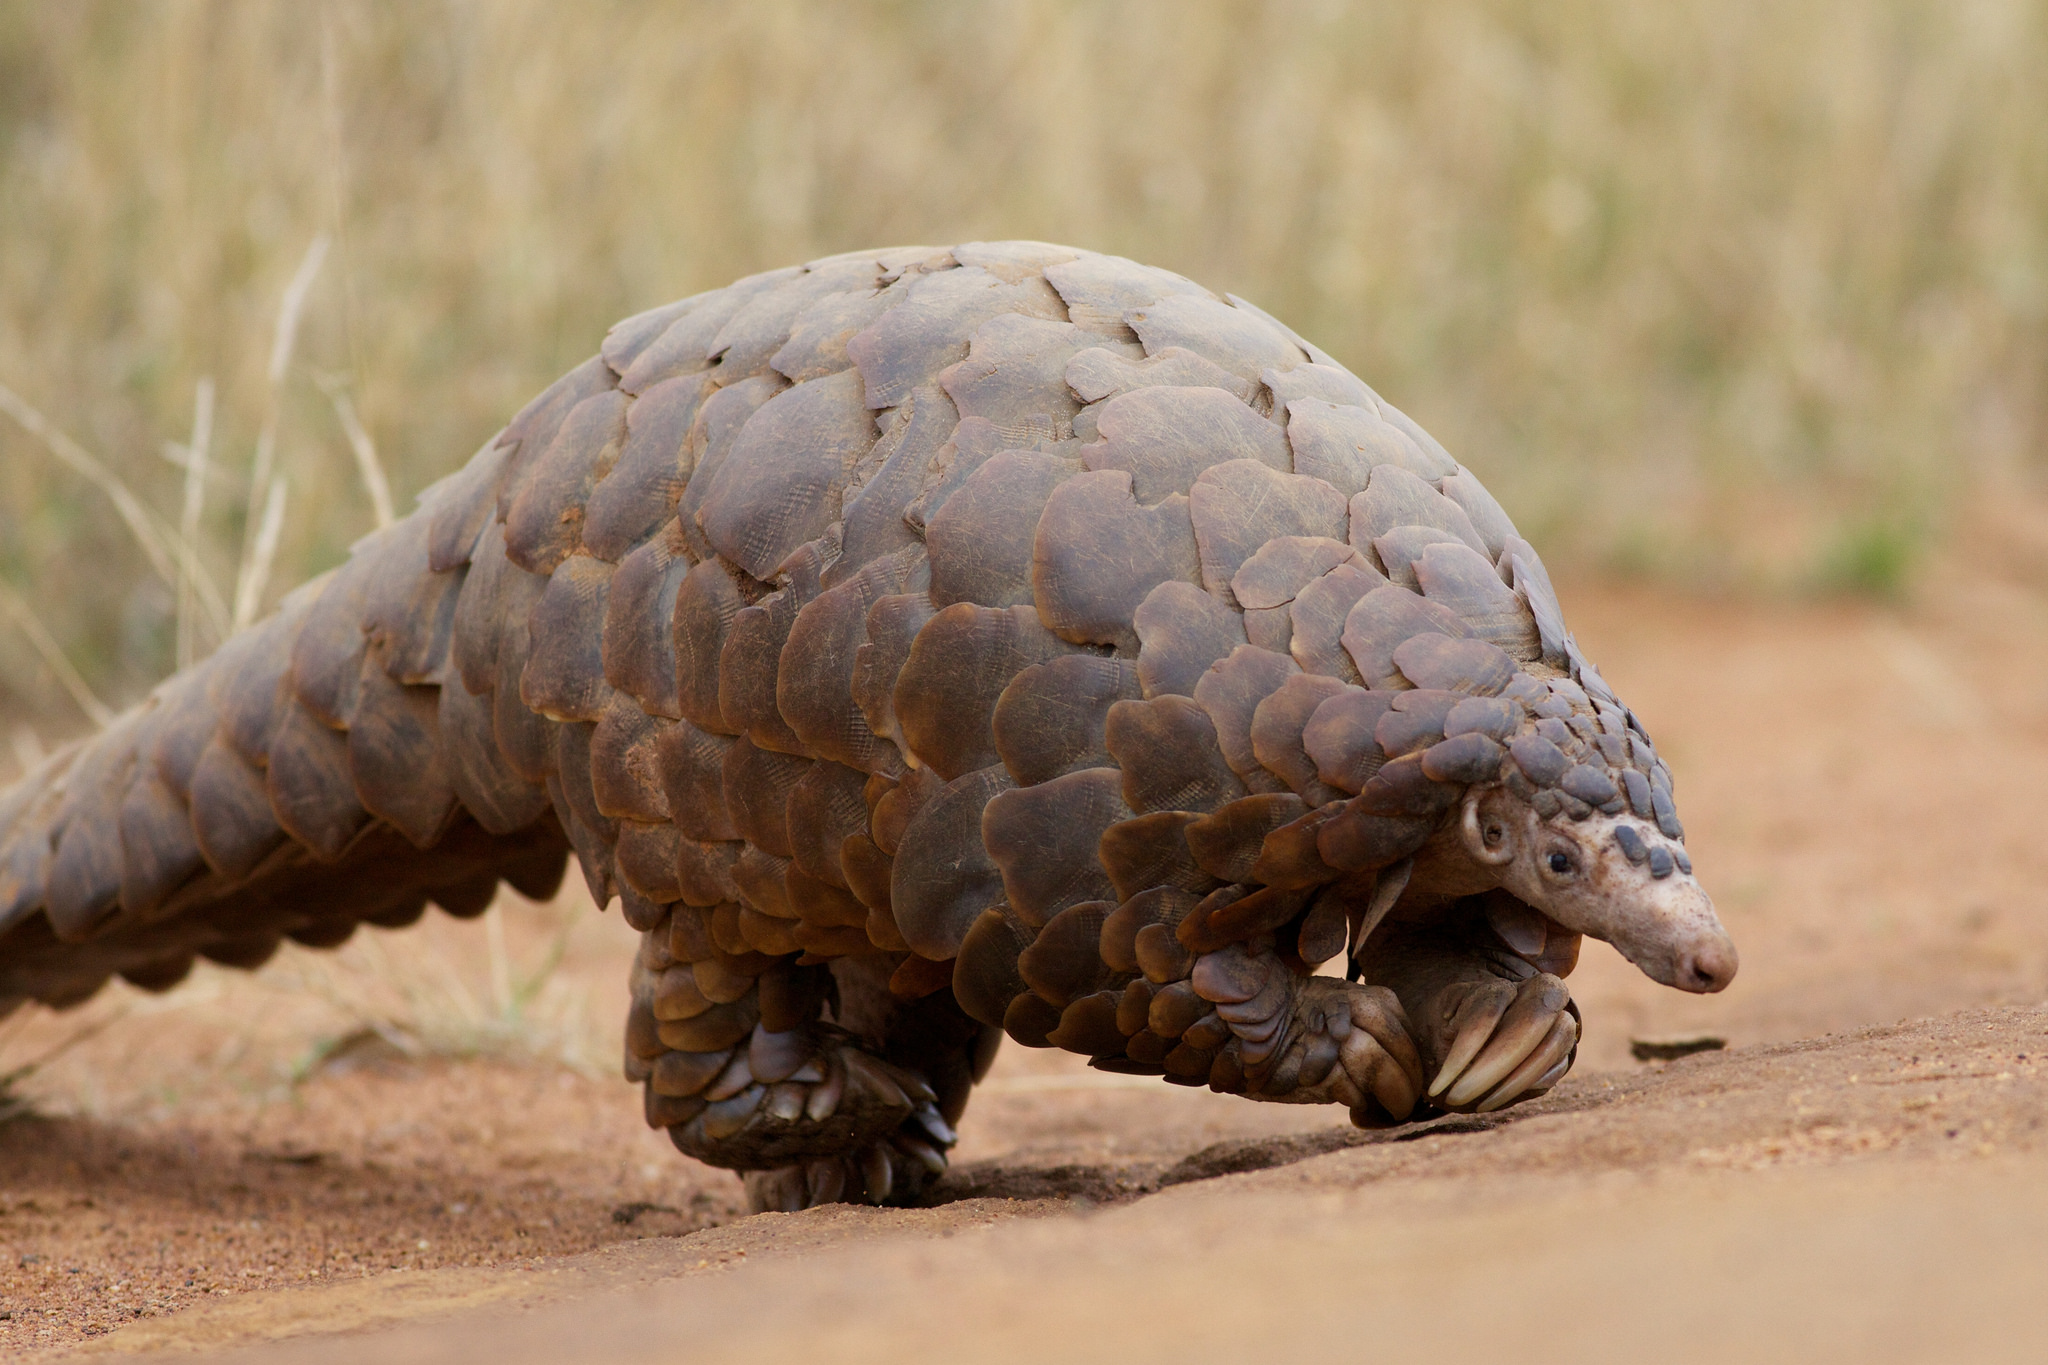 A sentient pinecone? A walking artichoke? No - a ground pangolin in South Africa. Image by  David Brossard .